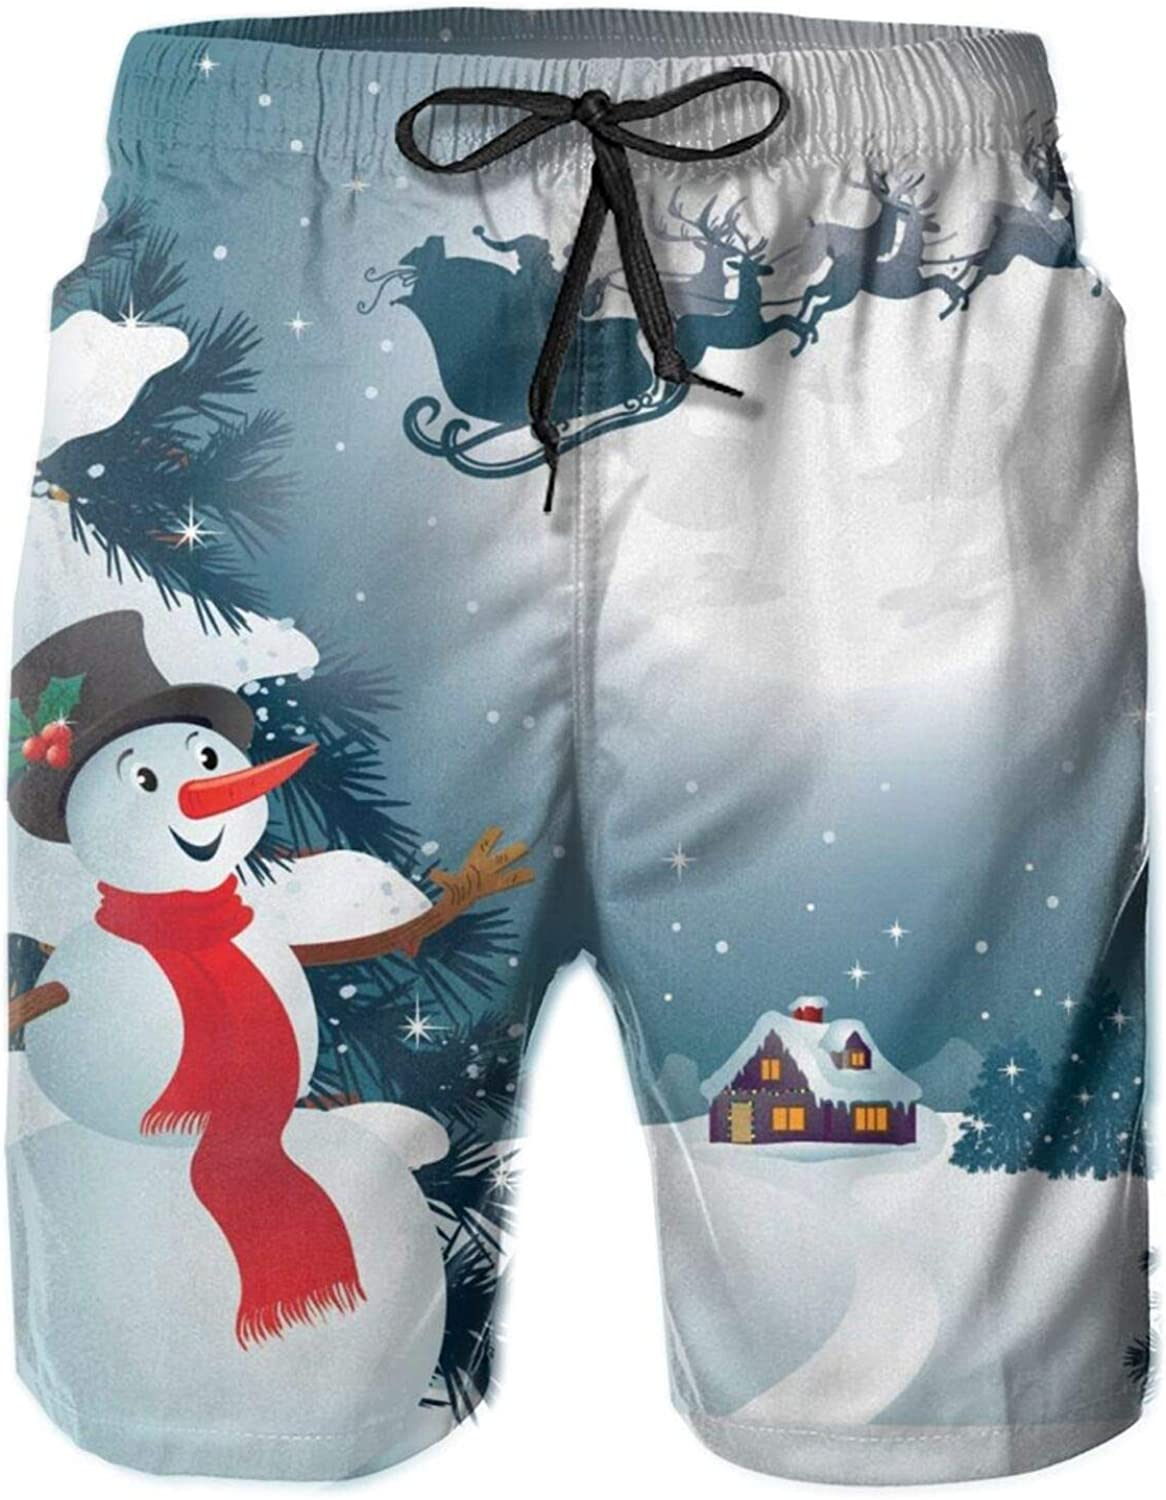 Mens Cash special price 100% Polyester Christmas Snowman Comfortable Max 67% OFF Trunks Swim B